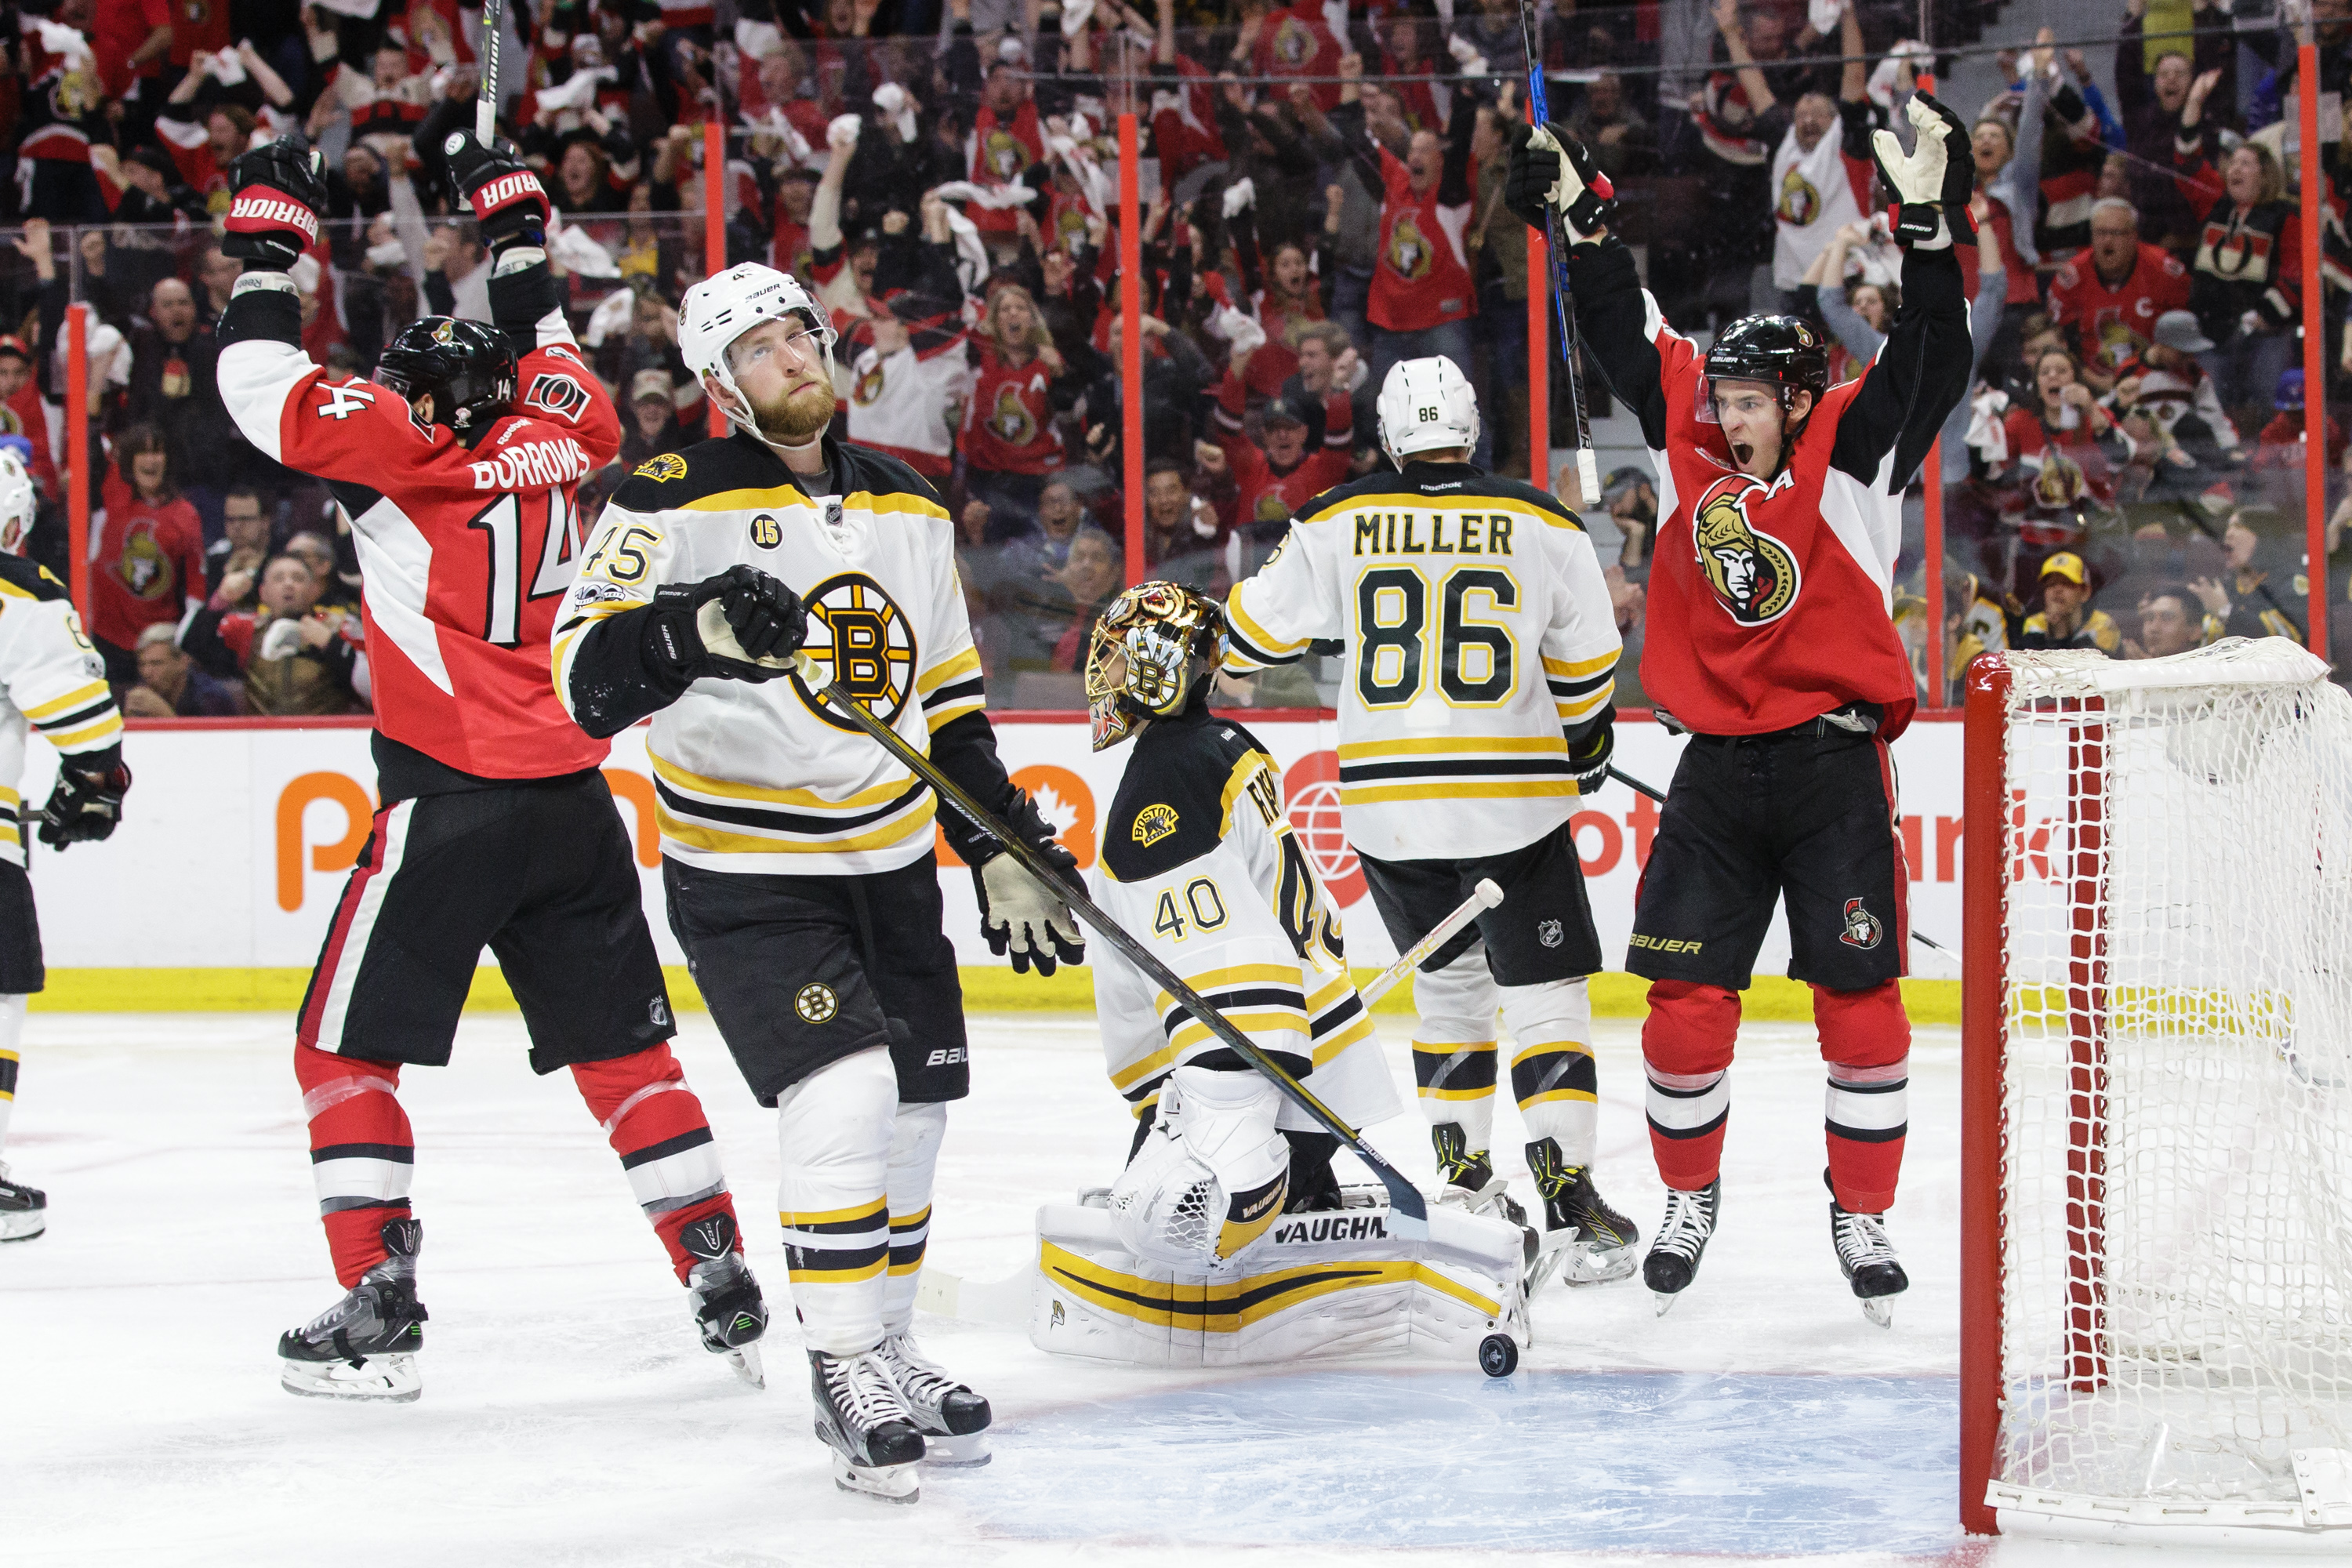 Ottawa Senators level-headed as 4th battle with Bruins approaches